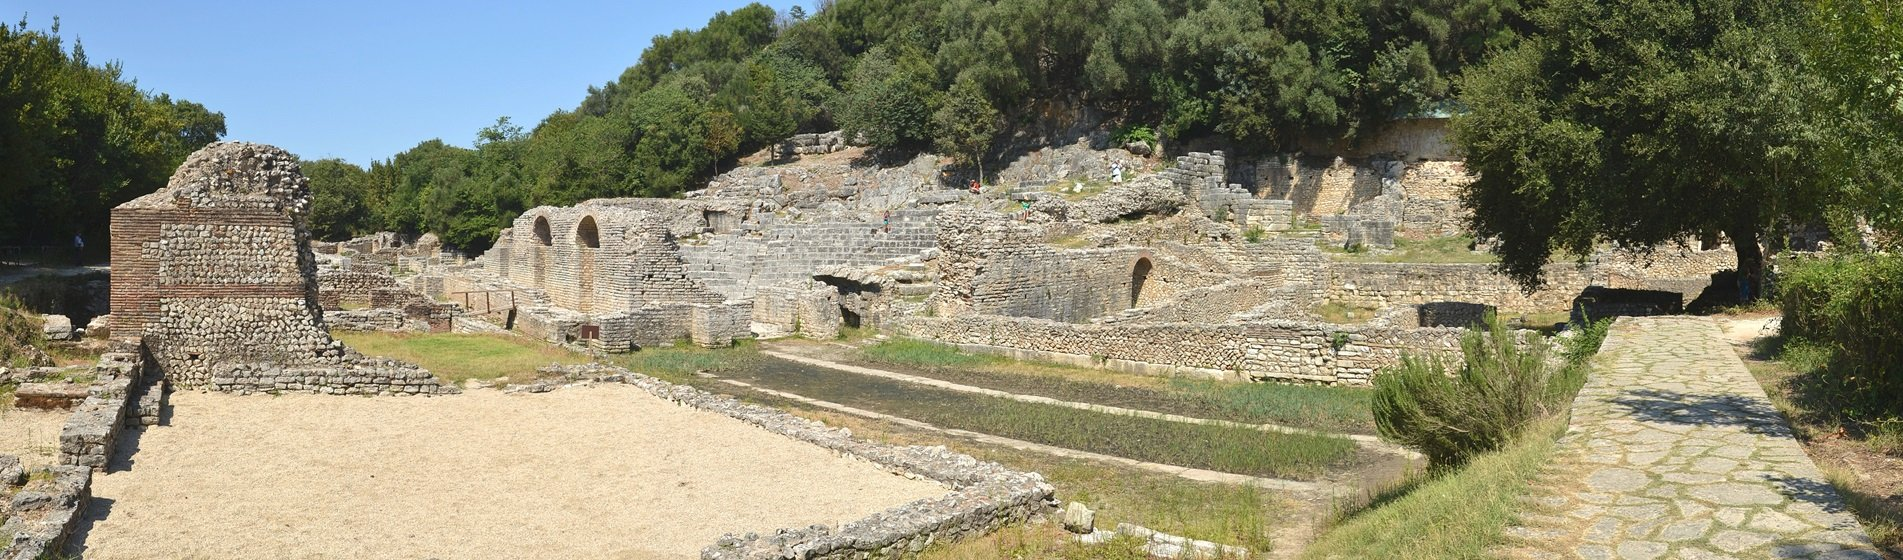 Agora at the ancient city of Butrint